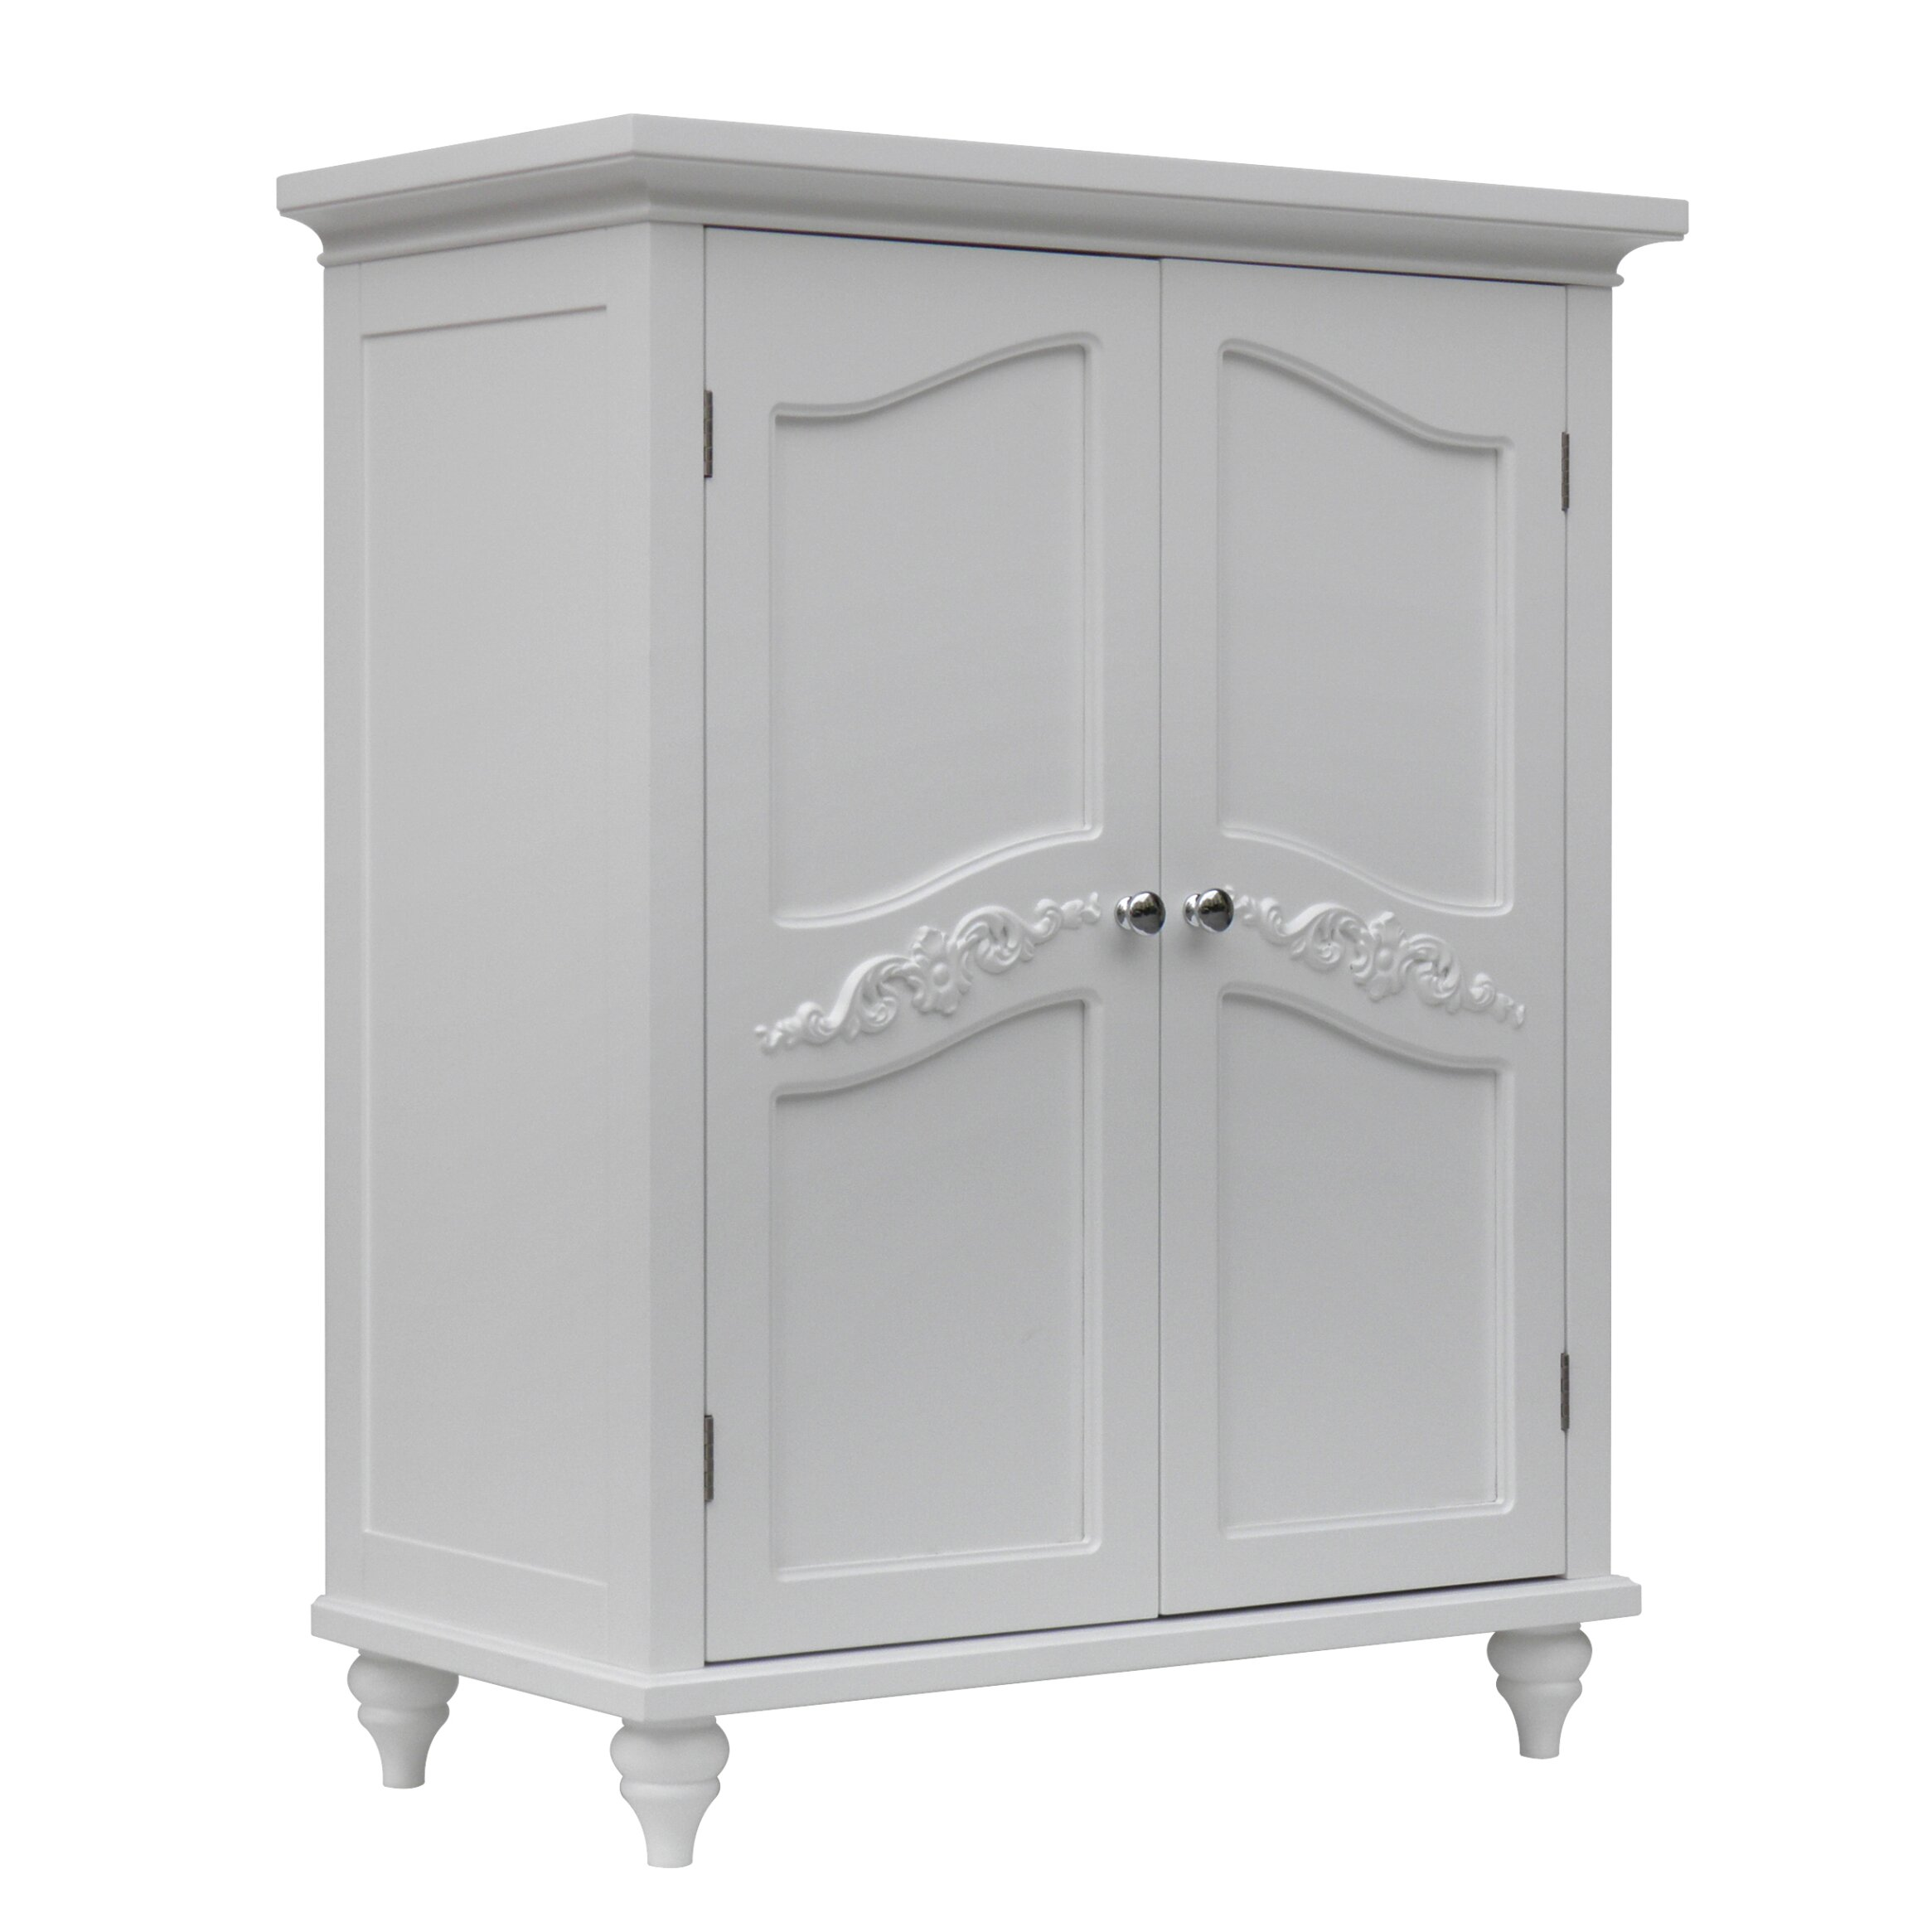 Elegant home fashions versailles 27 x 34 free standing - Free standing linen cabinets for bathroom ...